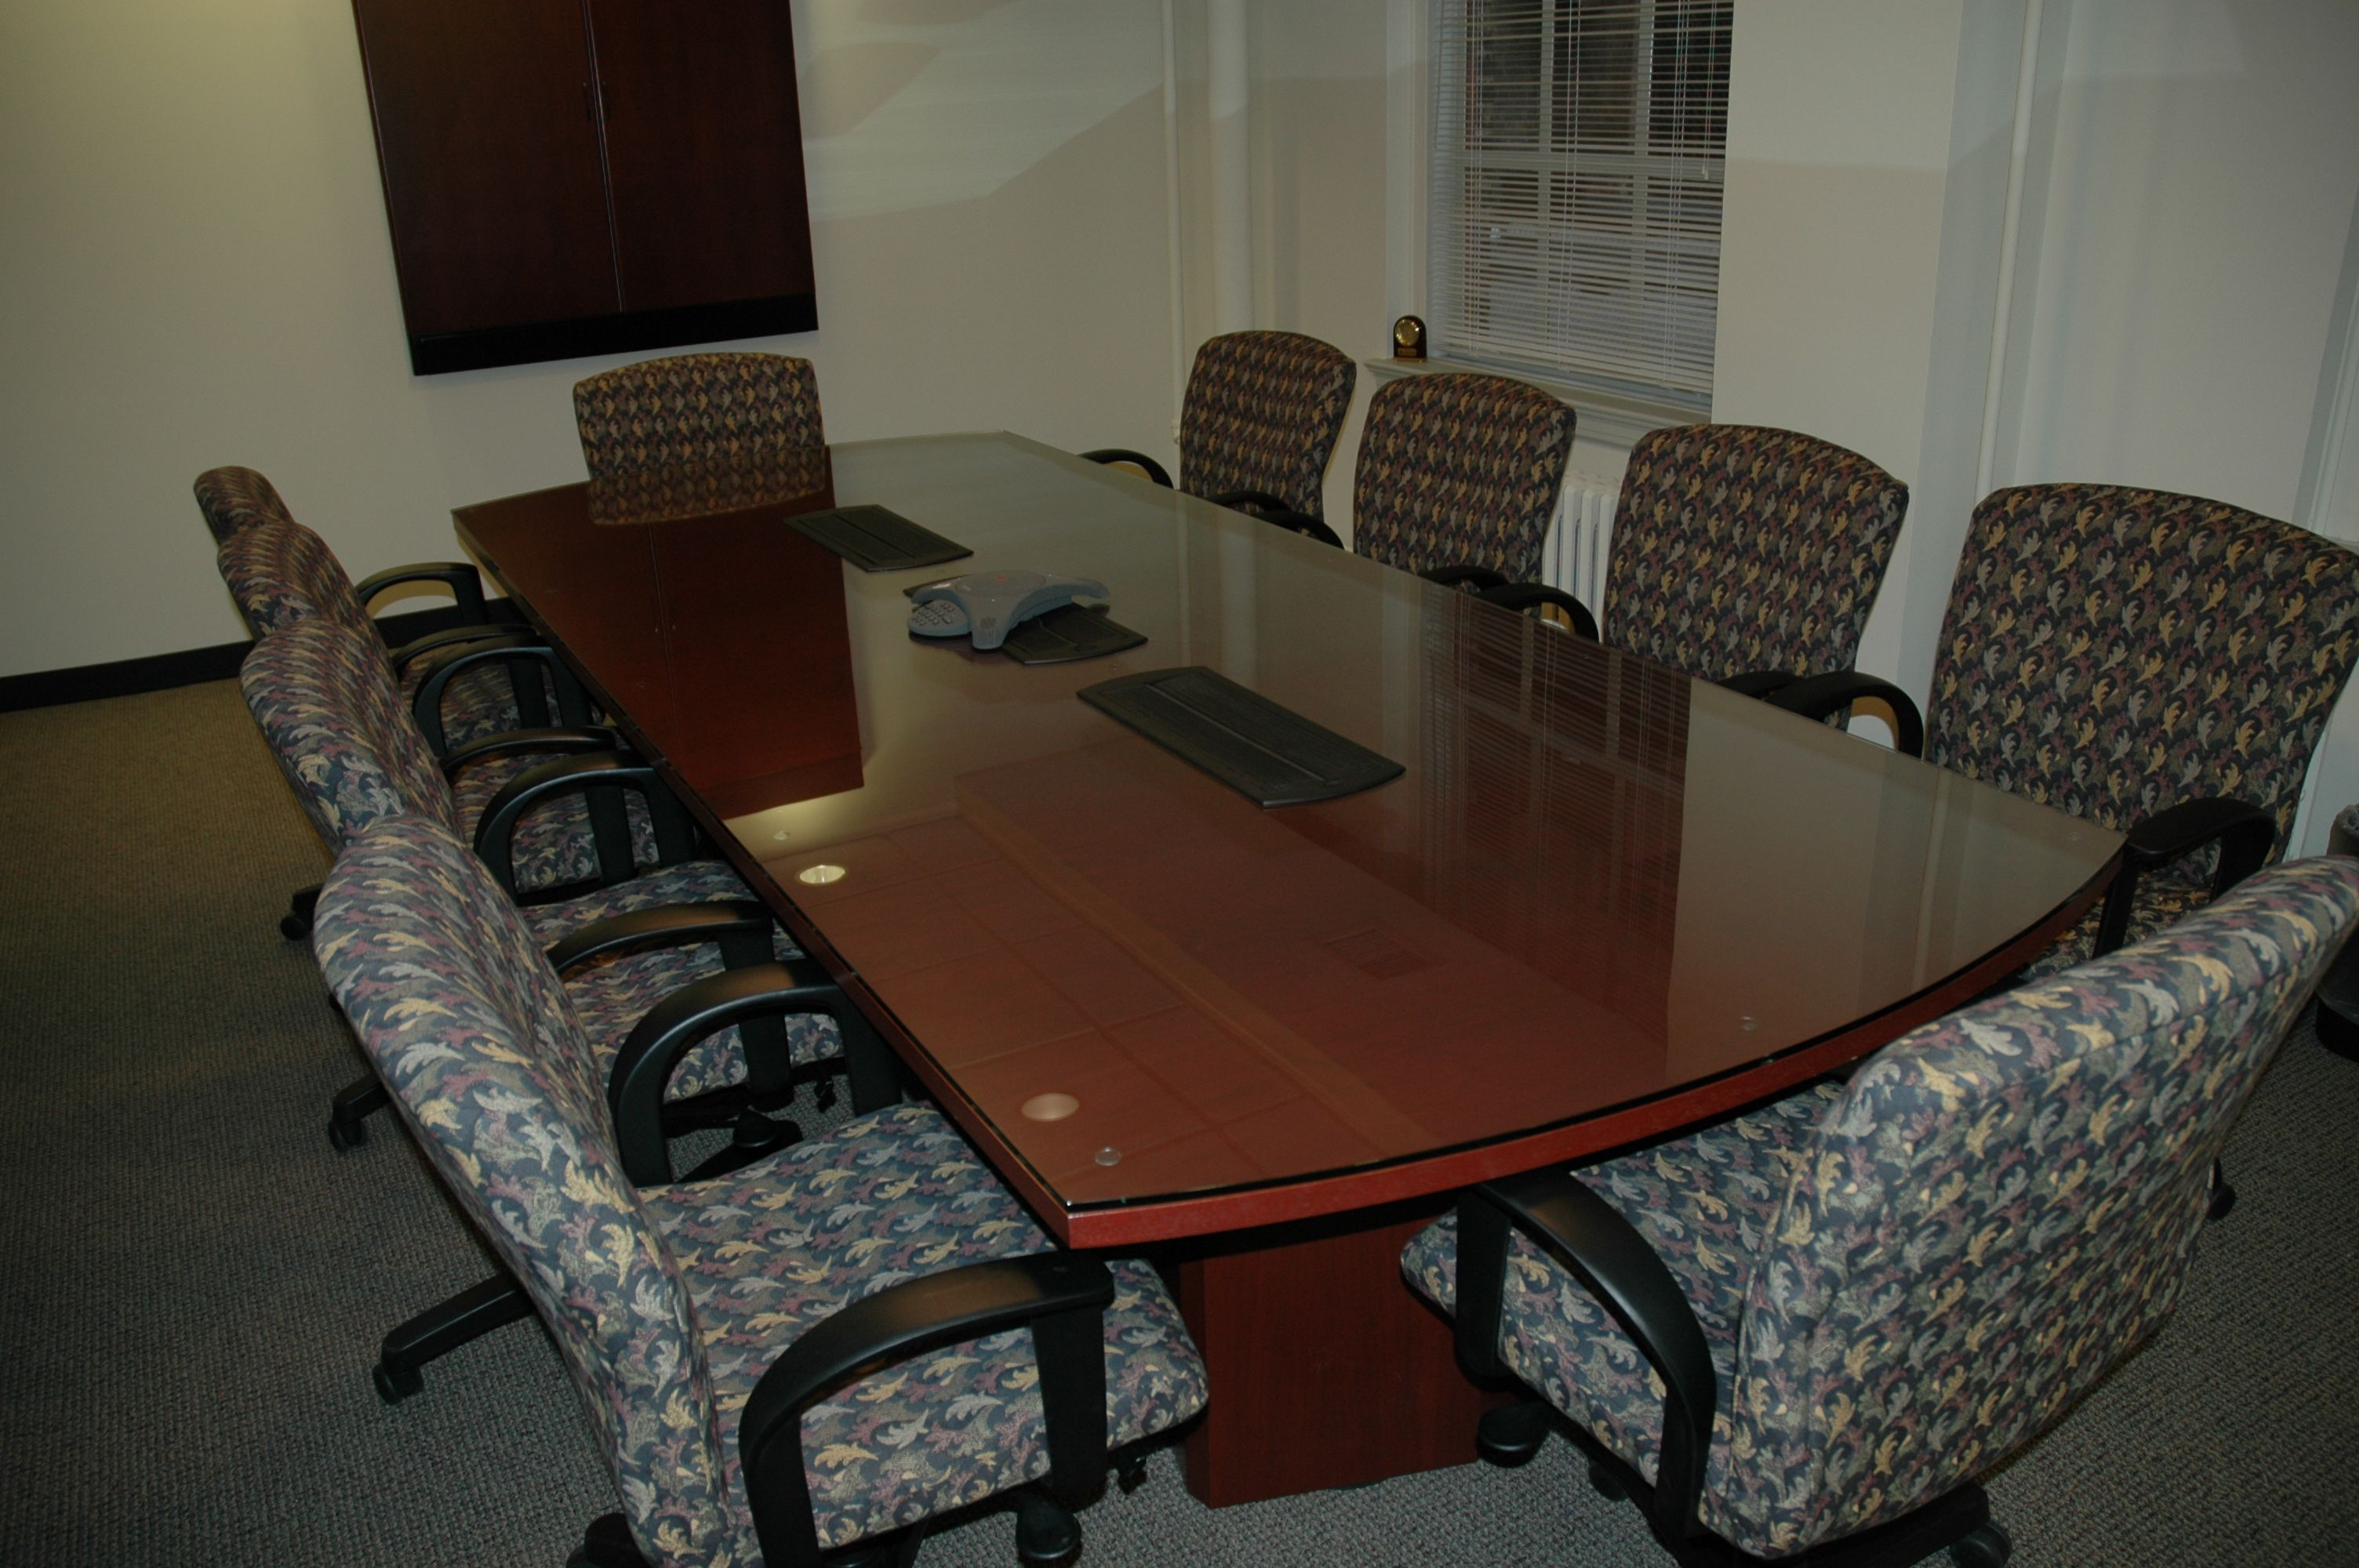 Glass Top To Protect Conference Room Table Conference Room Table Wood Table Conference Room Table